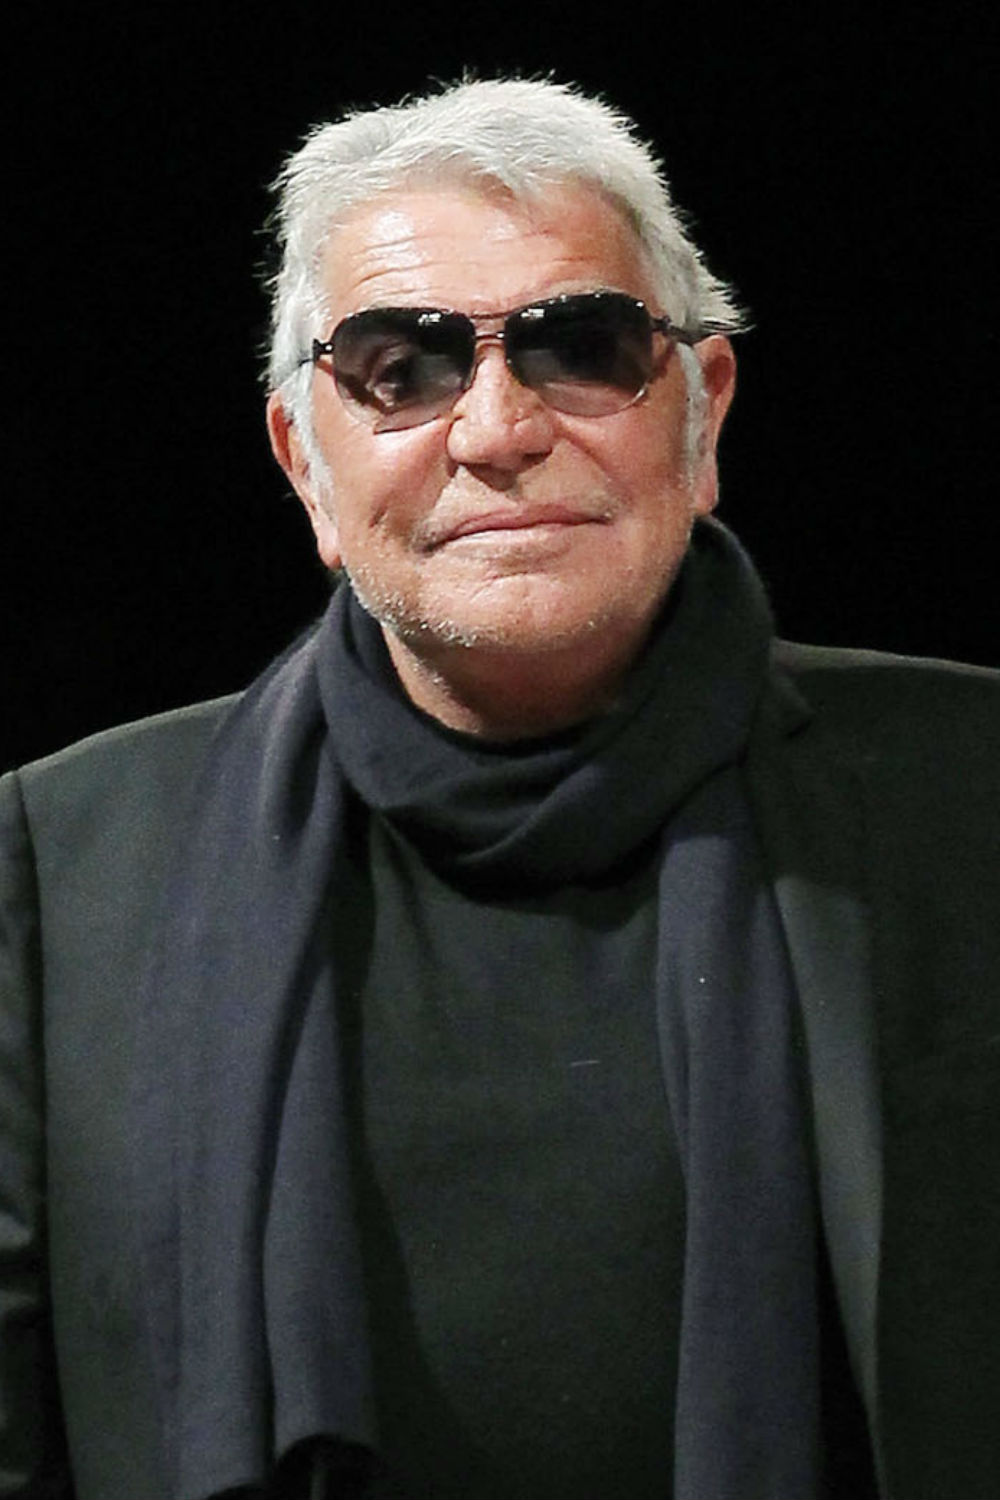 Roberto Cavalli Has No Interest In Dressing Anyone For The Oscars